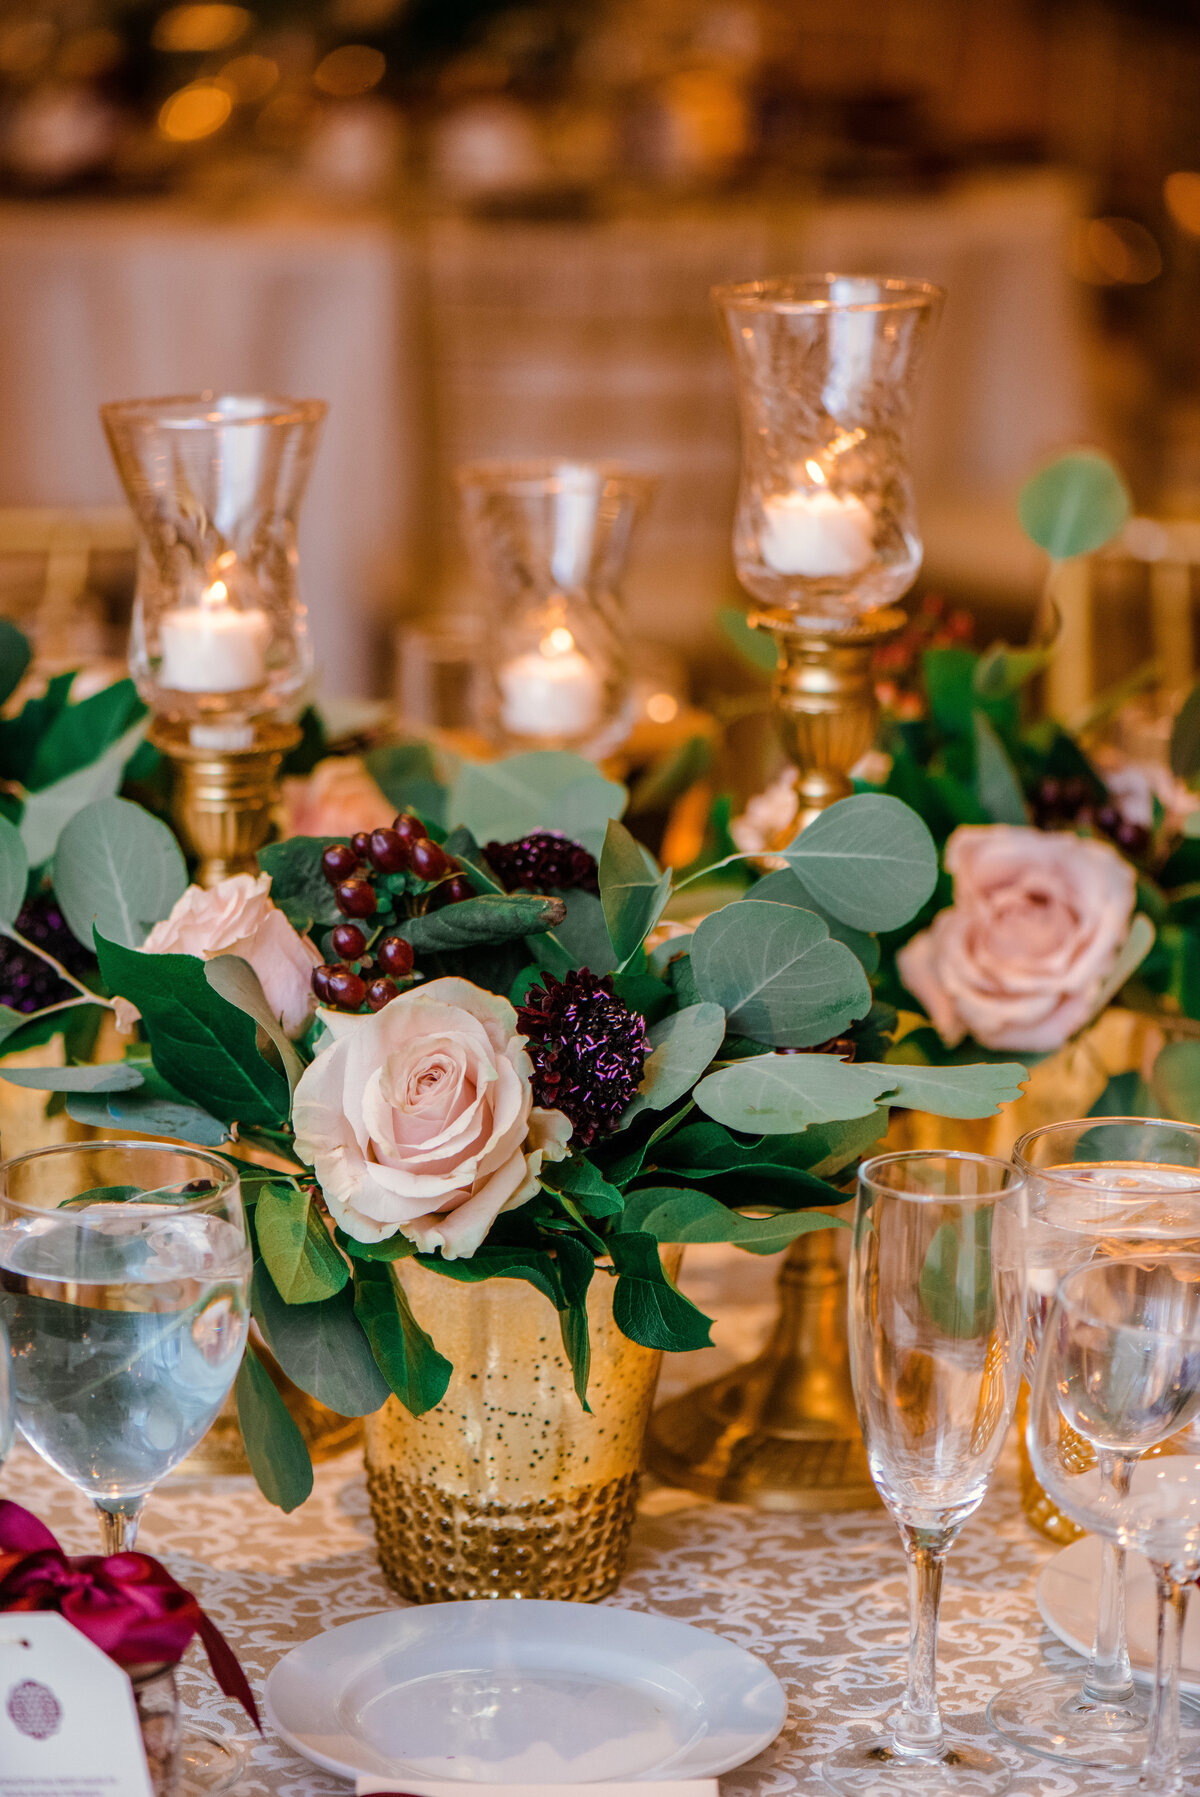 photo of flowers and centerpiece from wedding at The Carltun